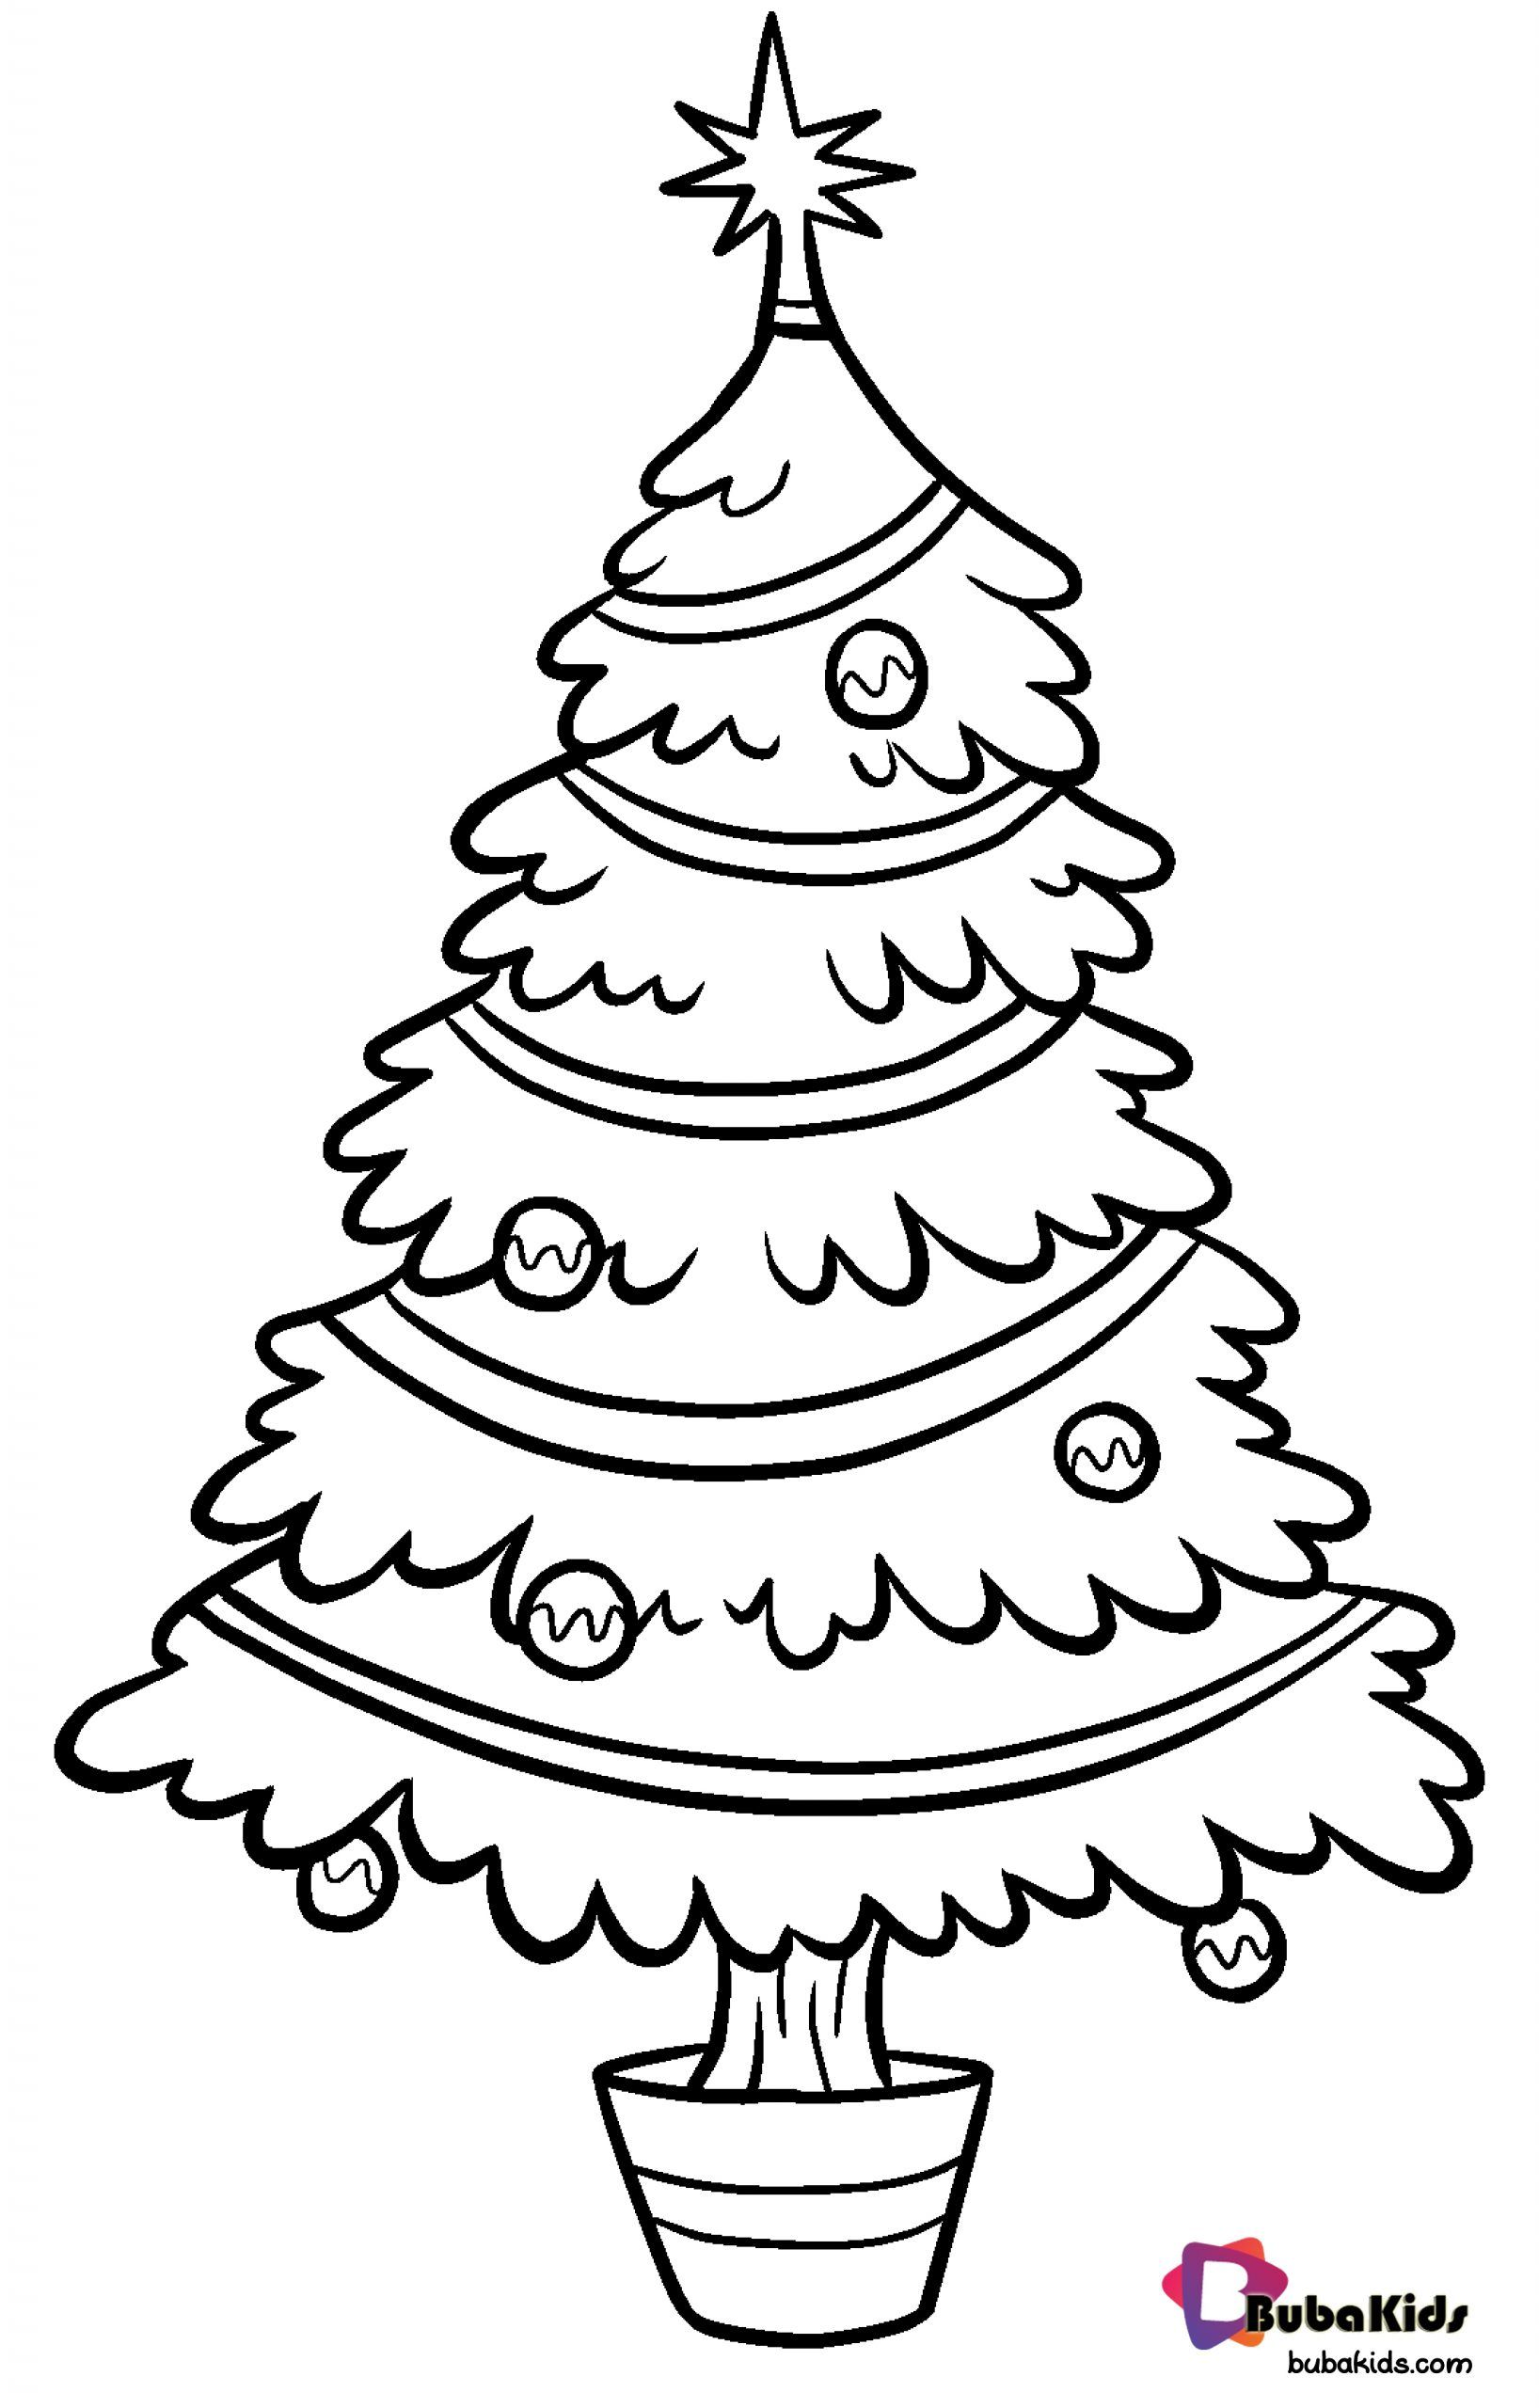 Free Download And Printable Christmas Tree Coloring Pages Collection Of Cartoon C Christmas Tree Template Christmas Tree Clipart Christmas Tree Coloring Page